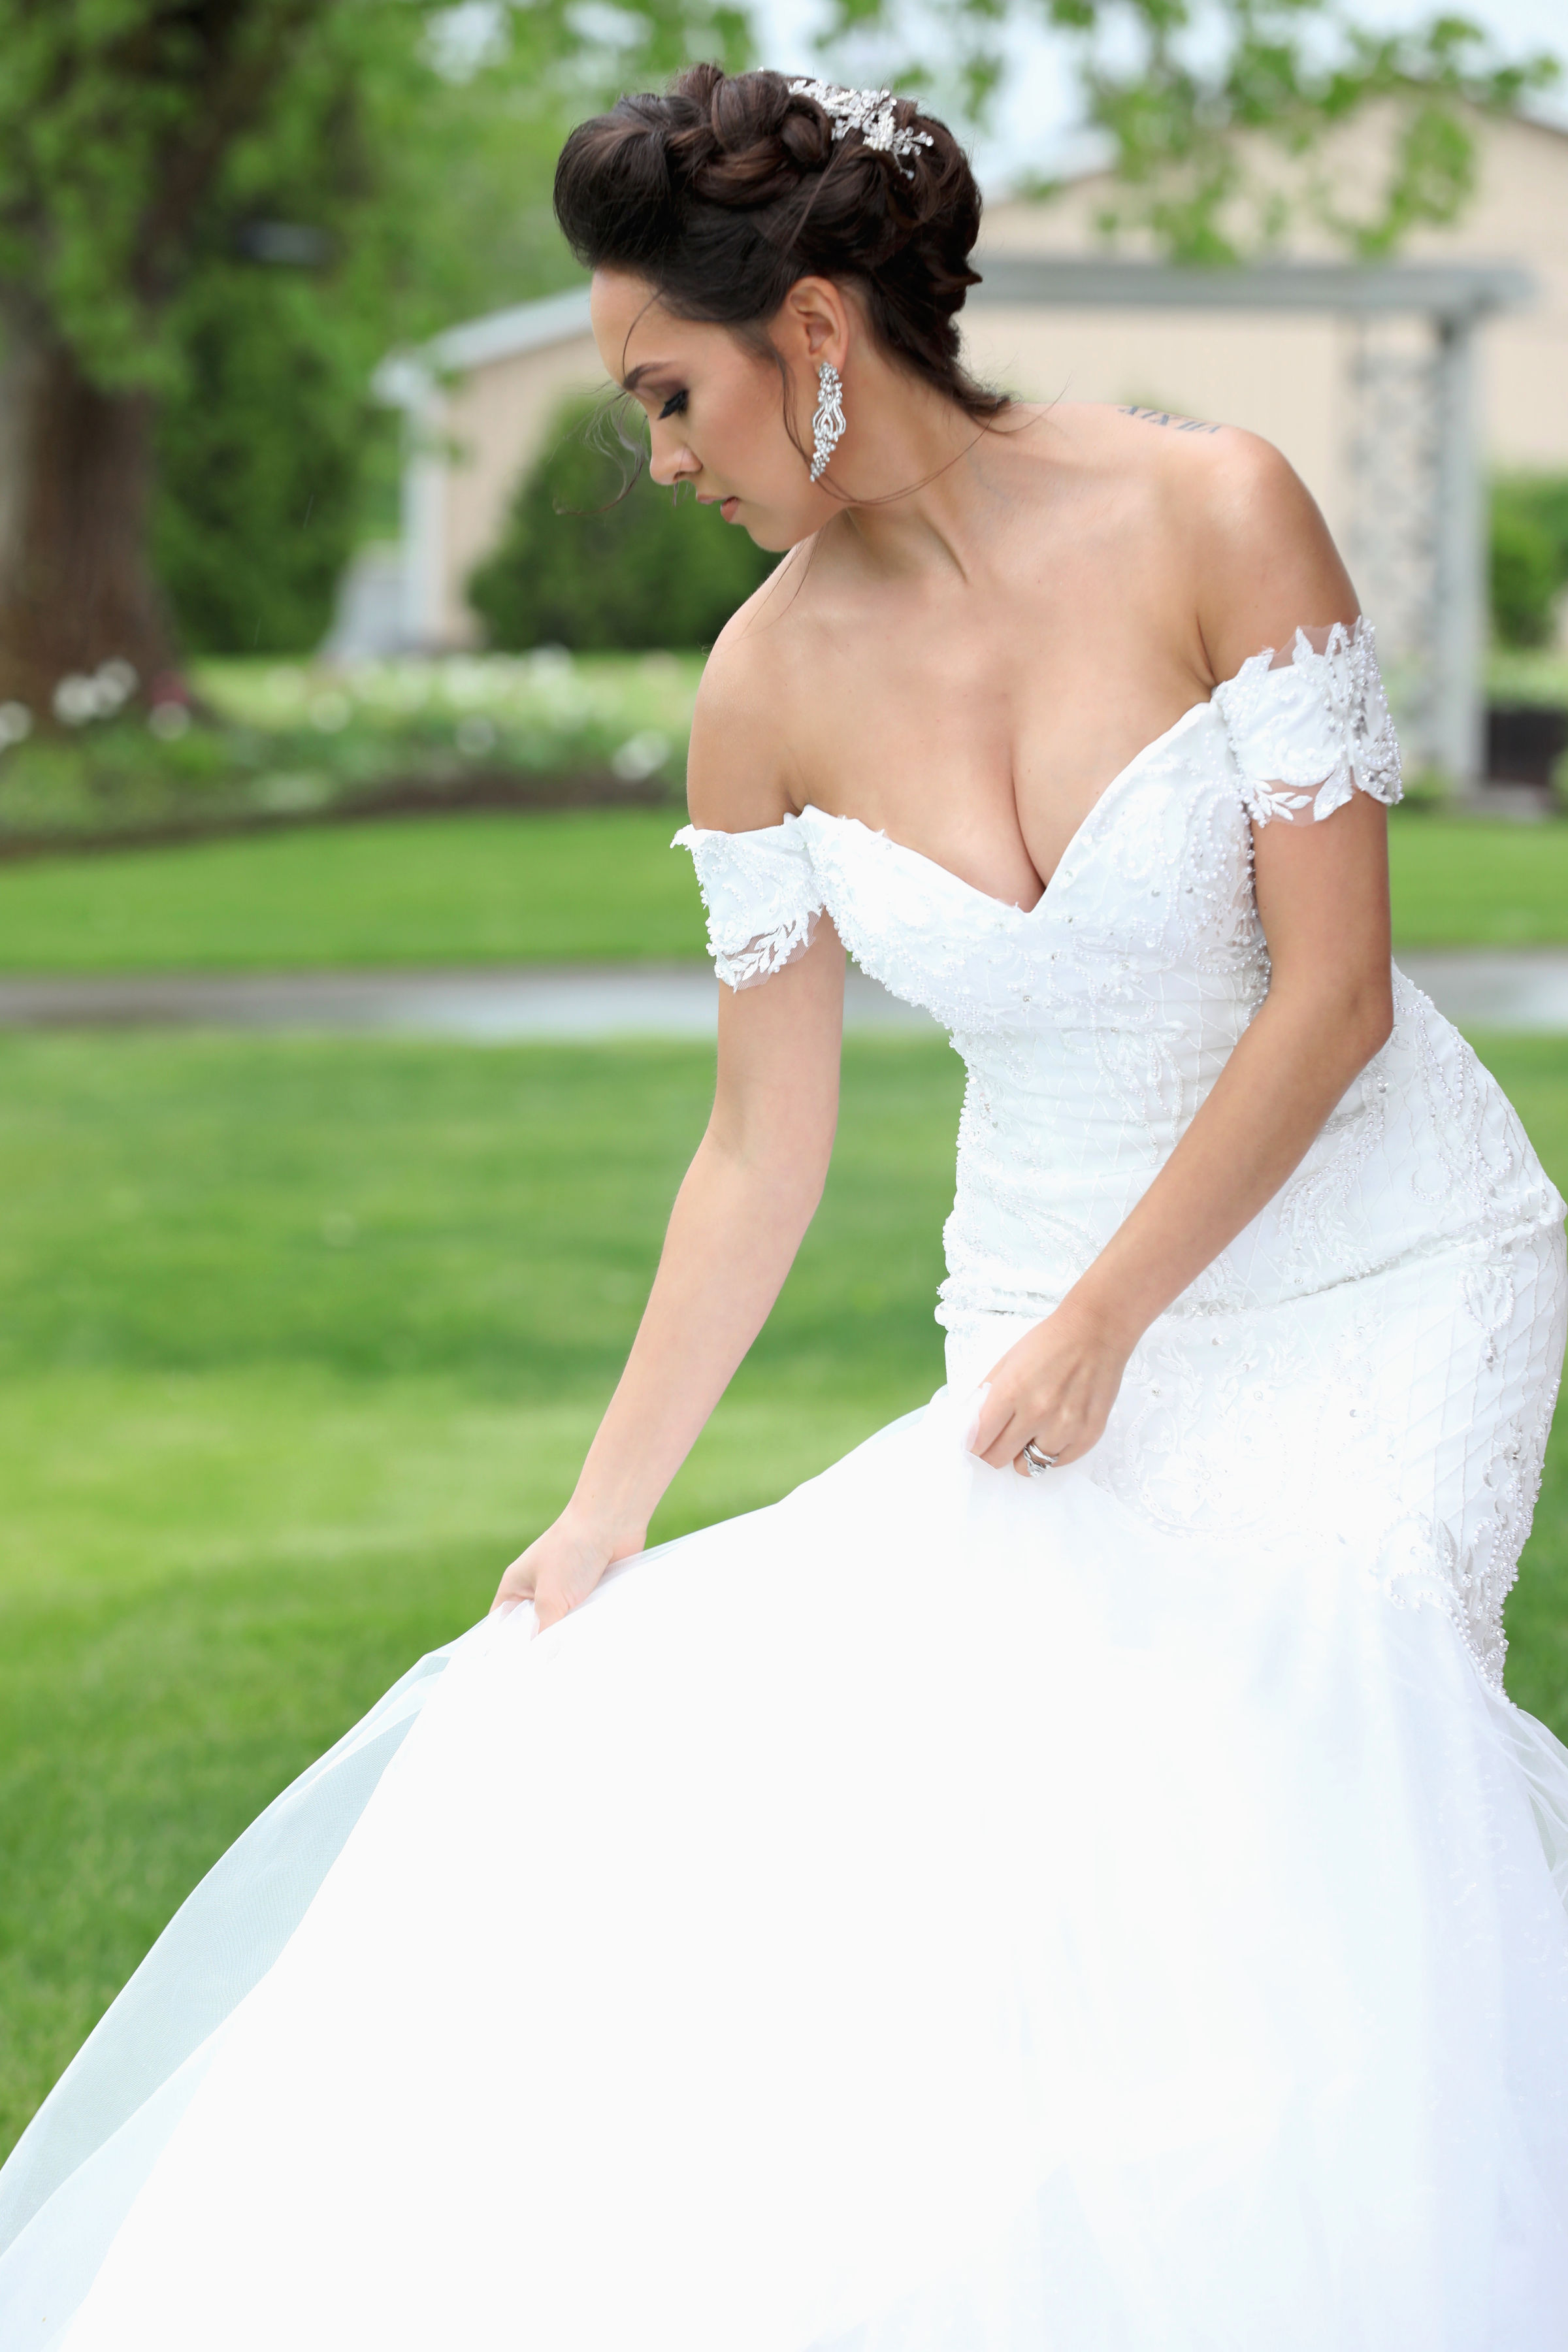 Off Shoulder Wedding Dress With Bling By Brides Tailor Brides Tailor Off Shoulder Wedding Dress With Bling By Brides Tailor Usa